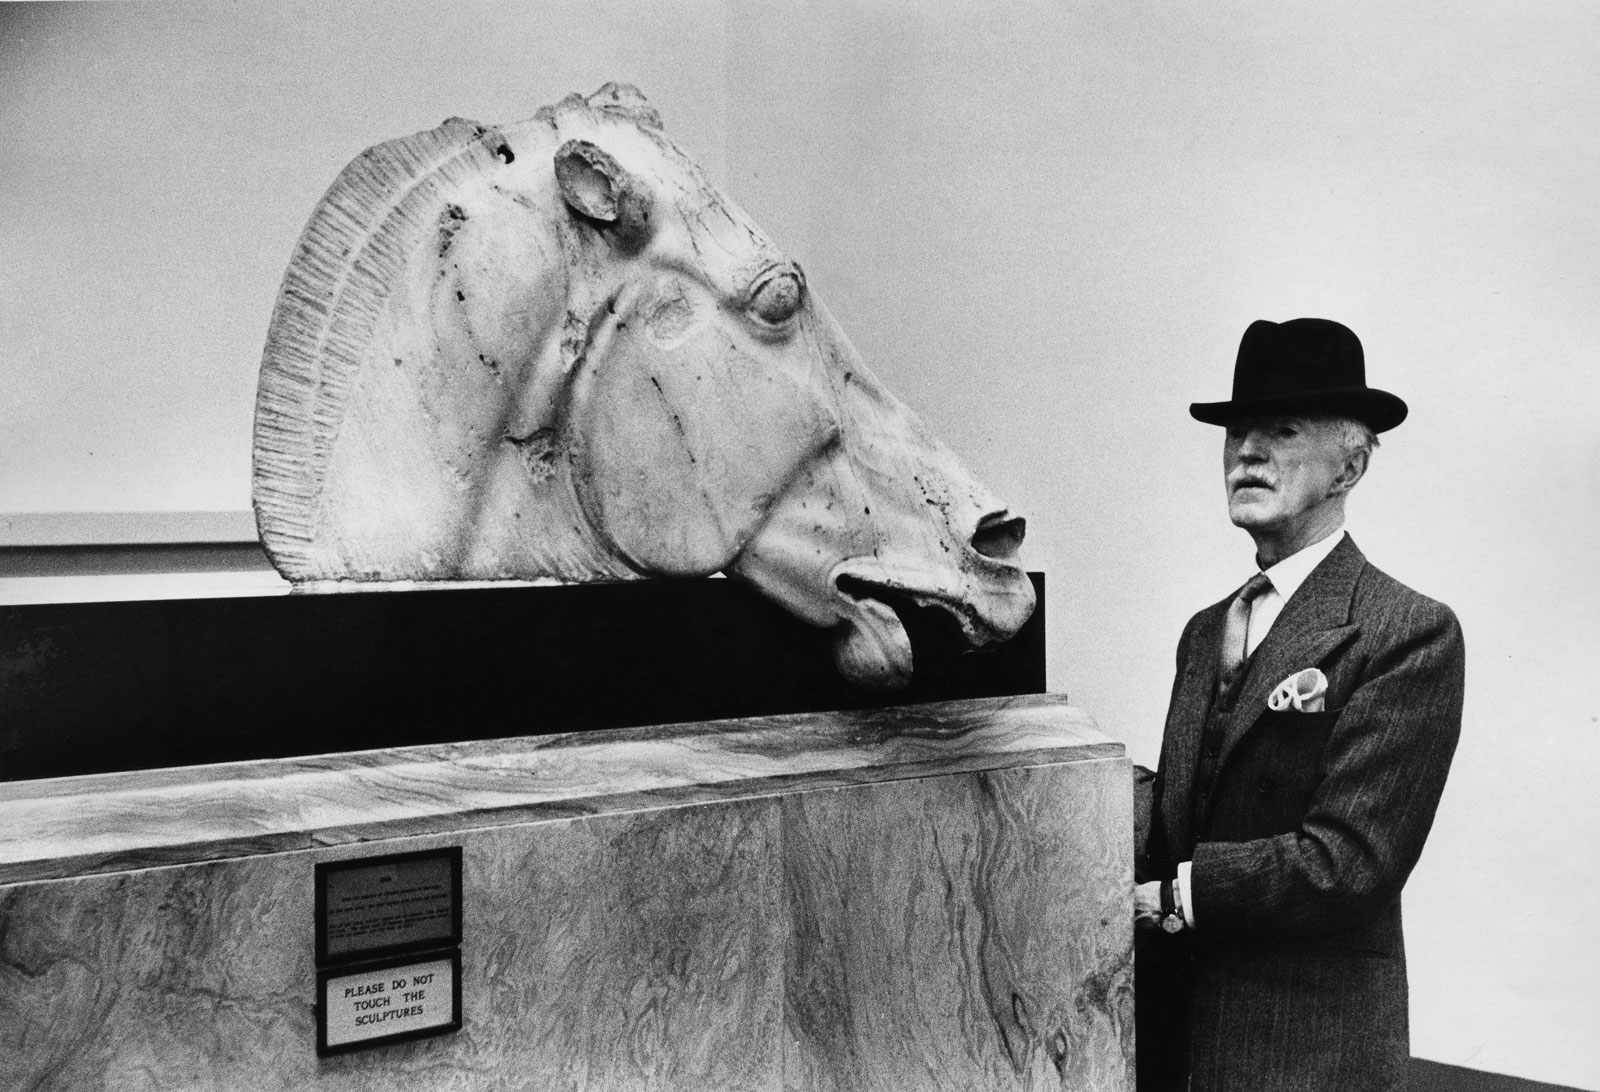 a man in a hat looking at a large horse head sculpture inside the museum